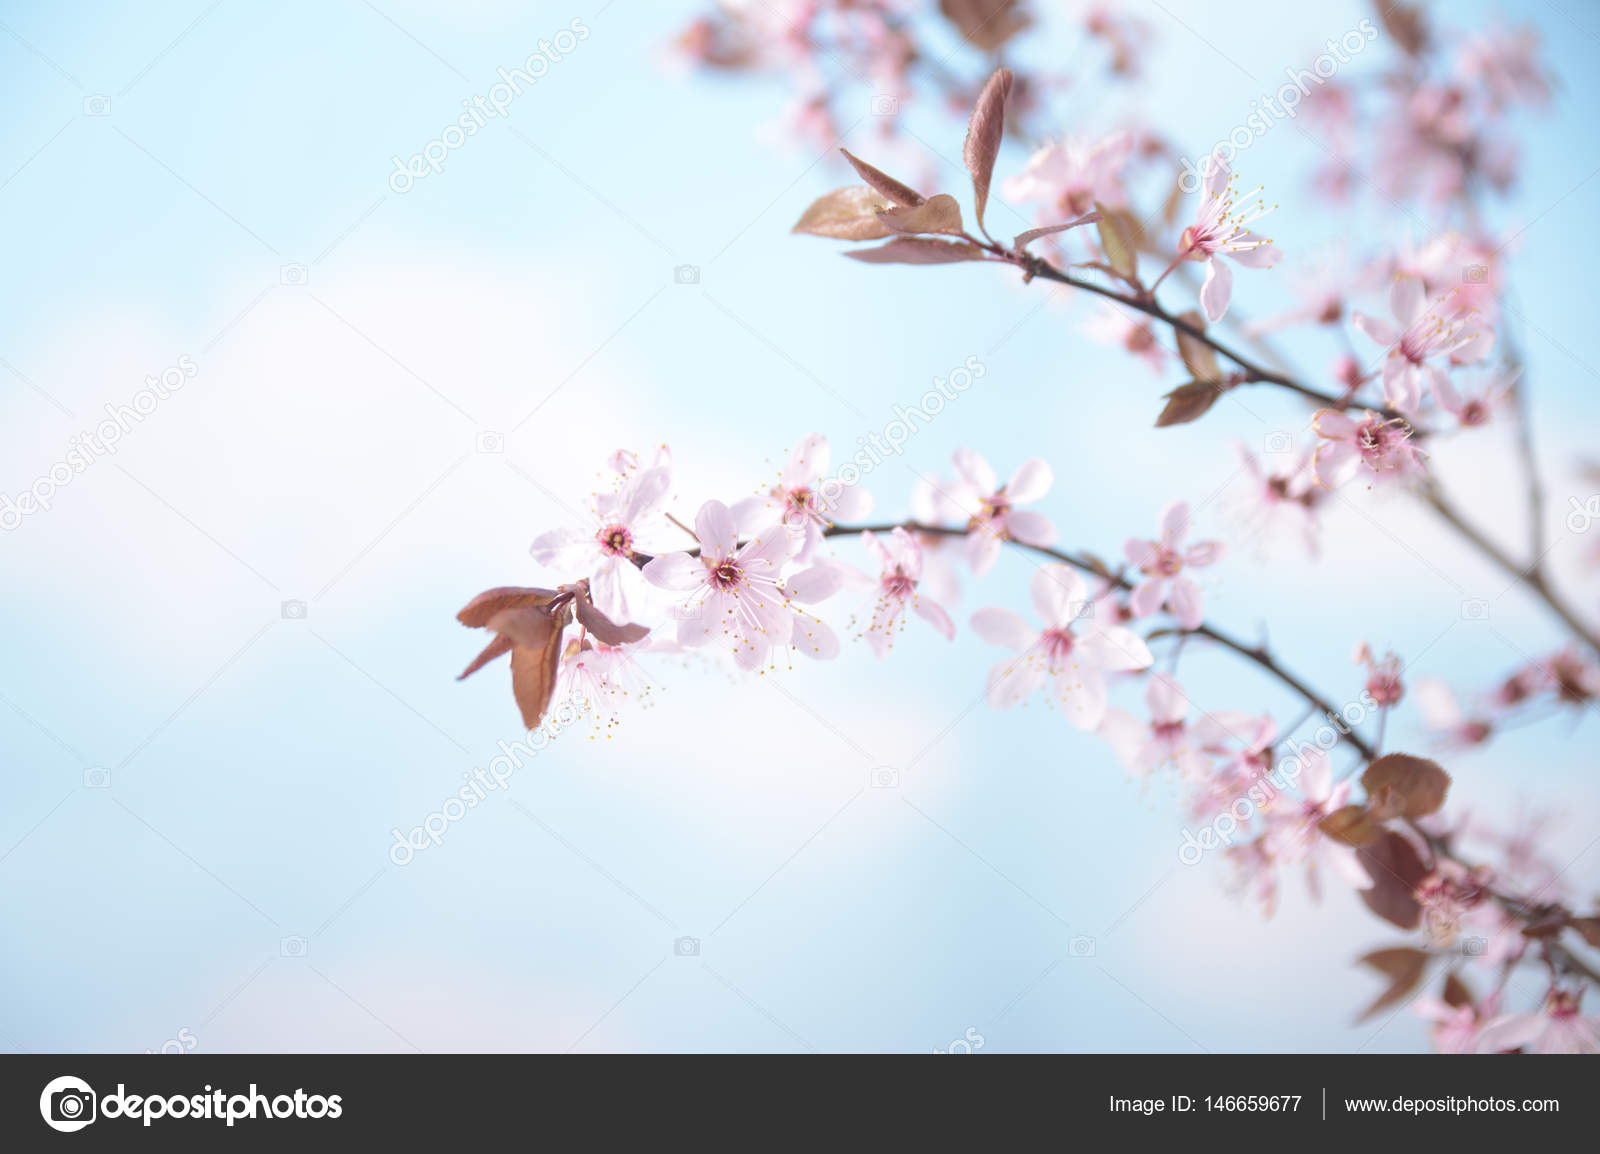 Branch With Pink Flowers Against The Blue Sky And White Clouds